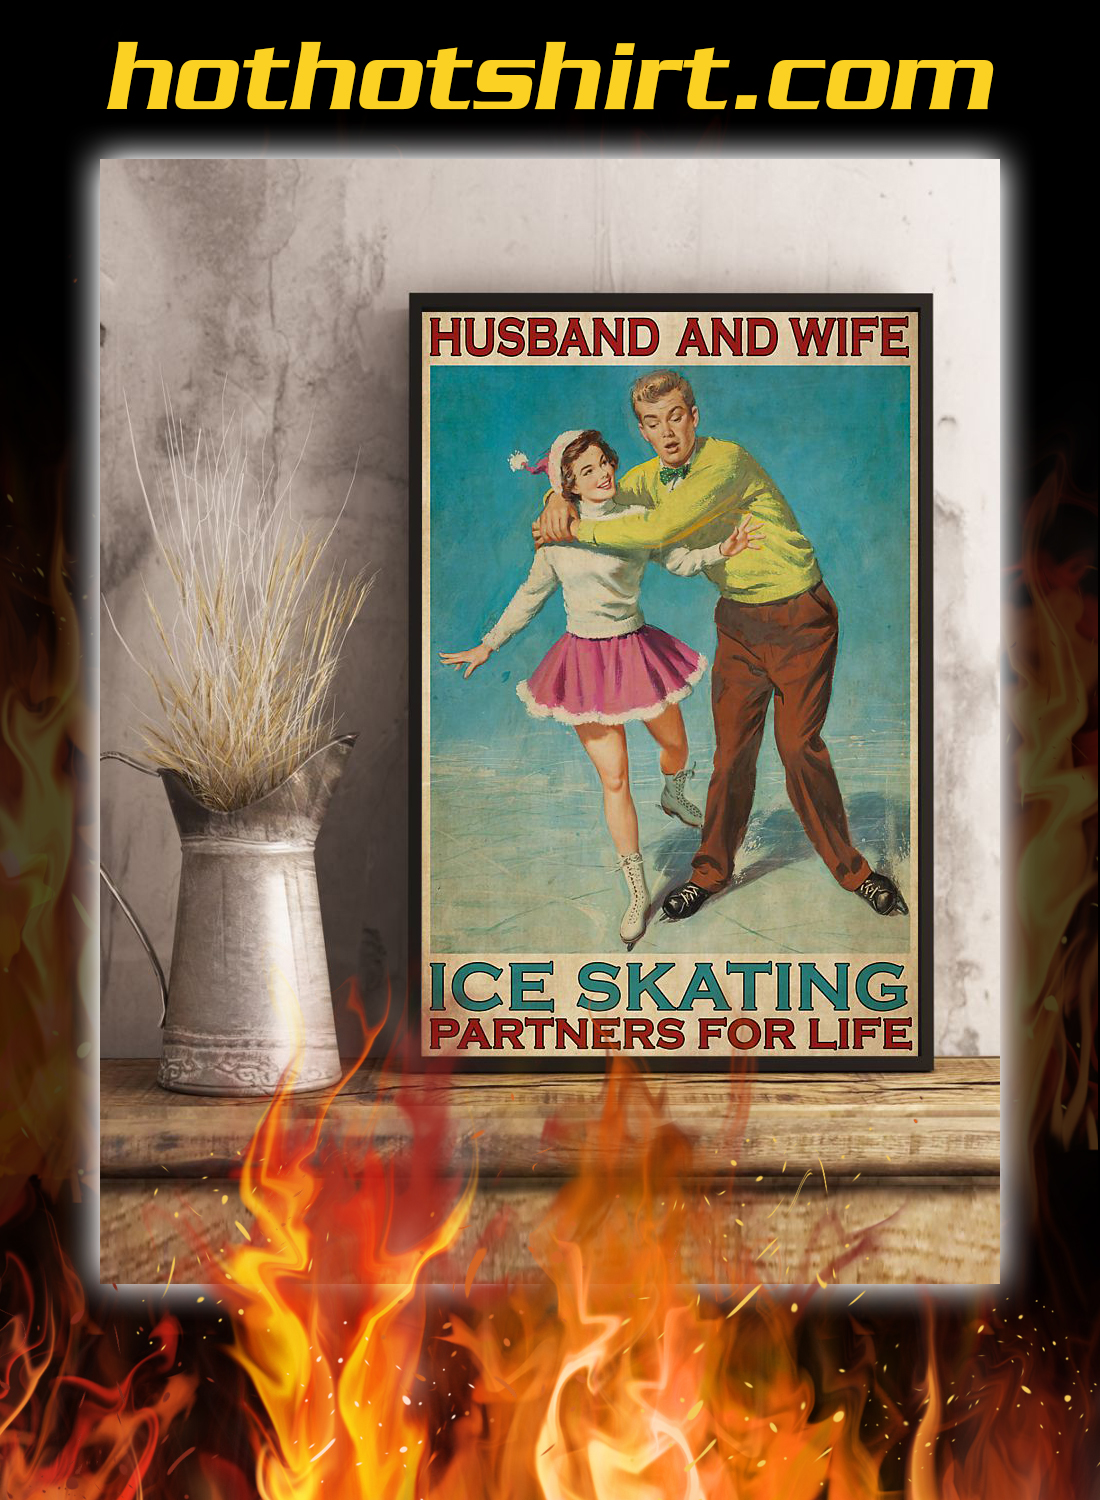 Husband and wife ice skating partners for life poster 2